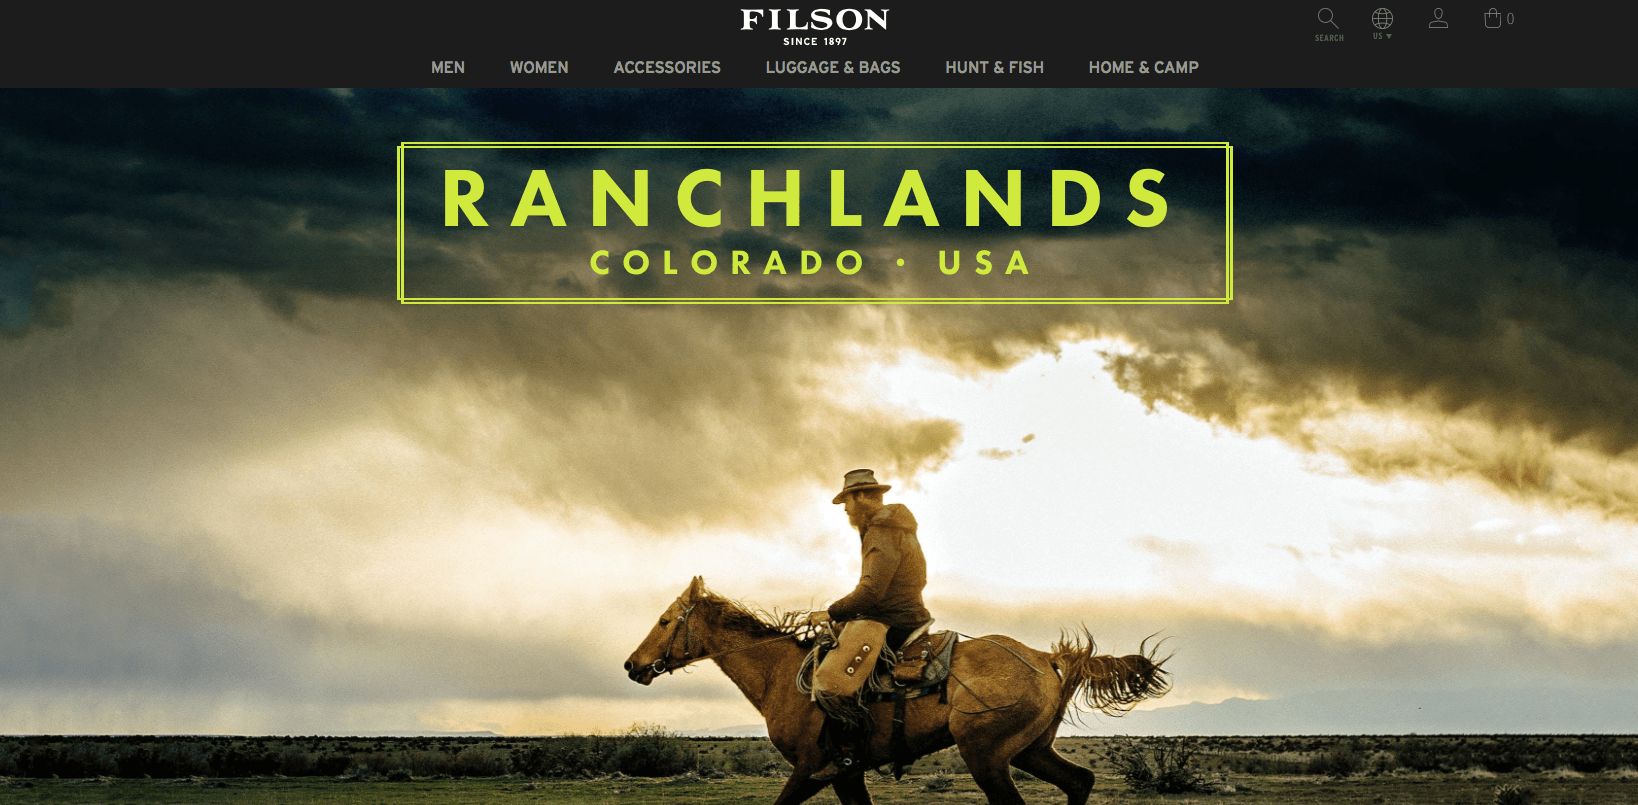 Filson-Ranchlands-Screenshot-1